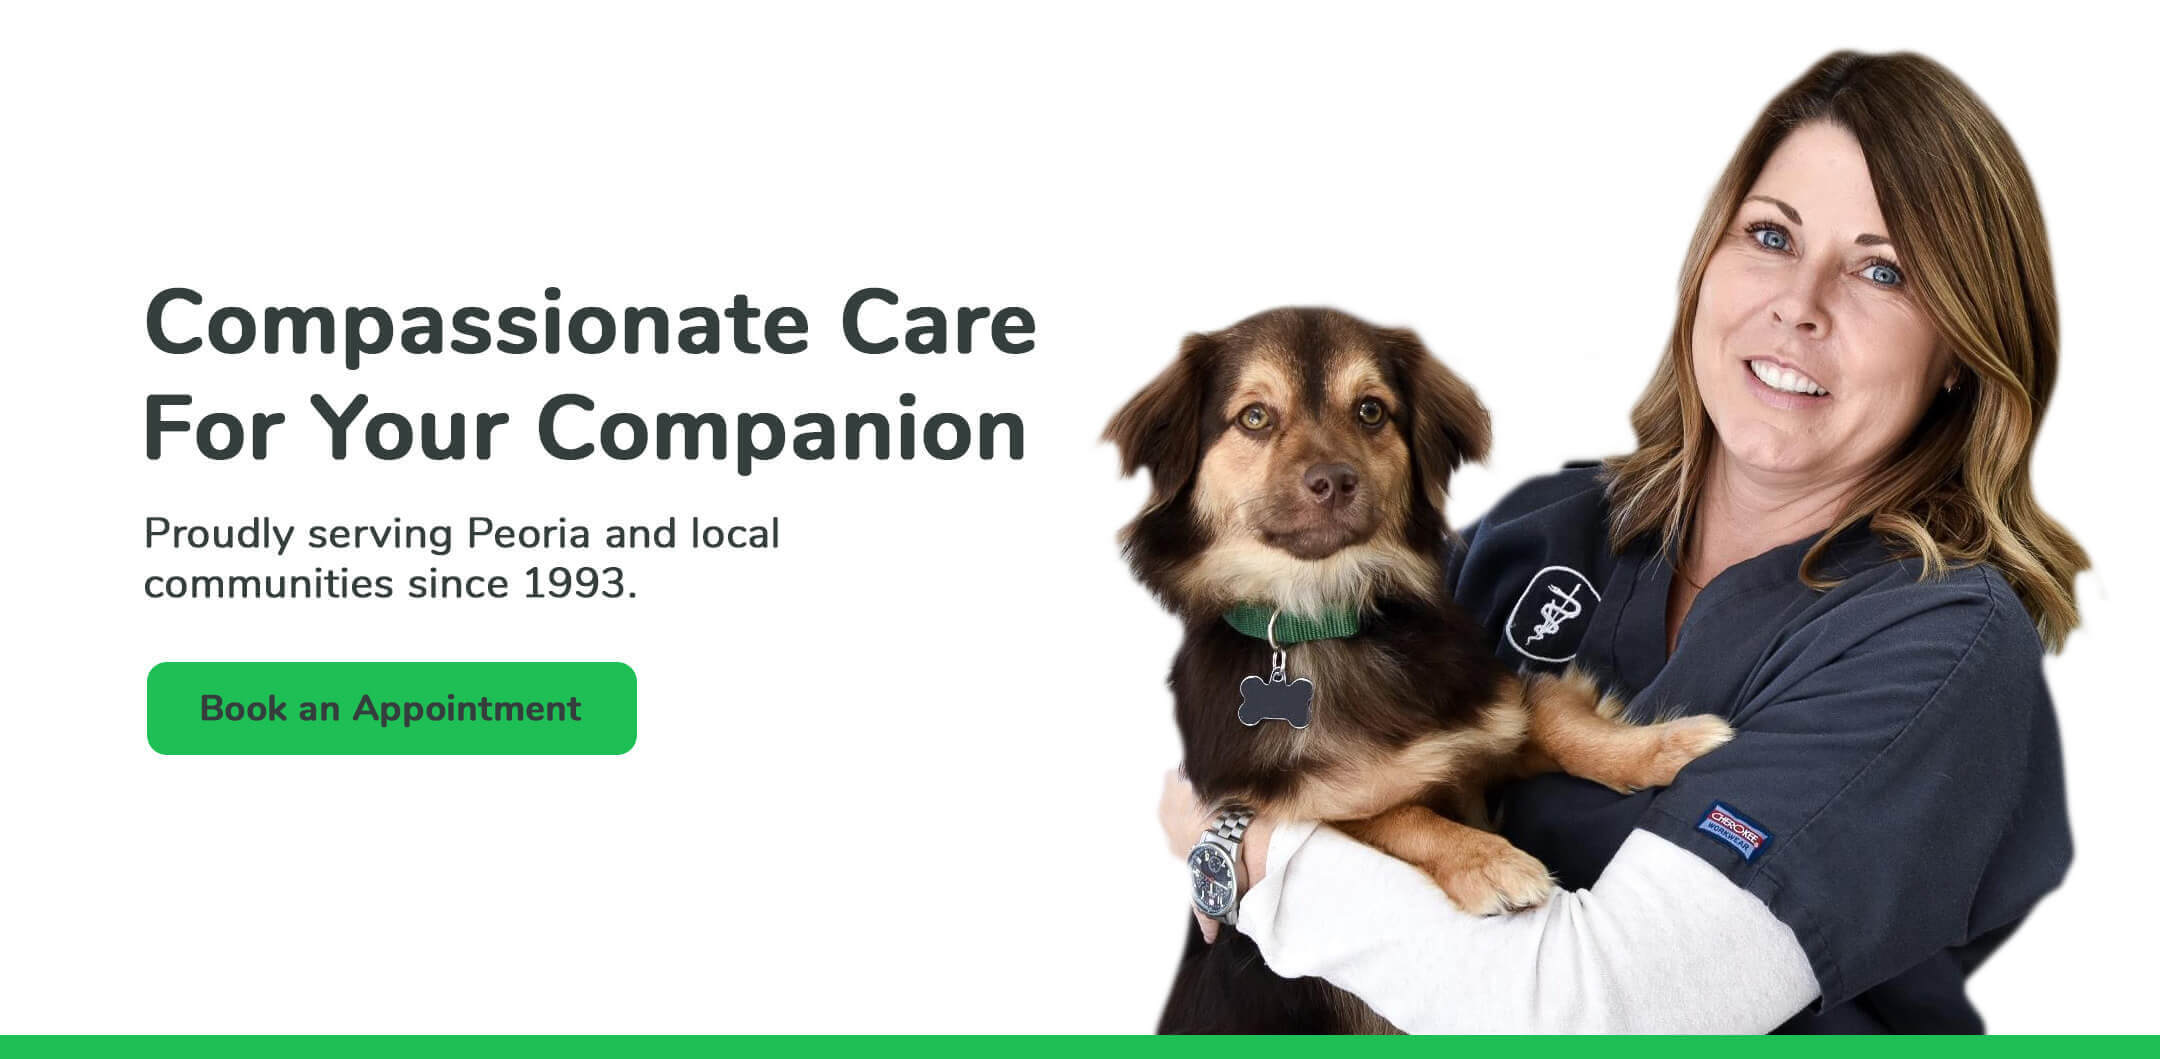 Compassionate care for your companion. Proudlly serving Bloomington-Normal, Illinois families since 1993.